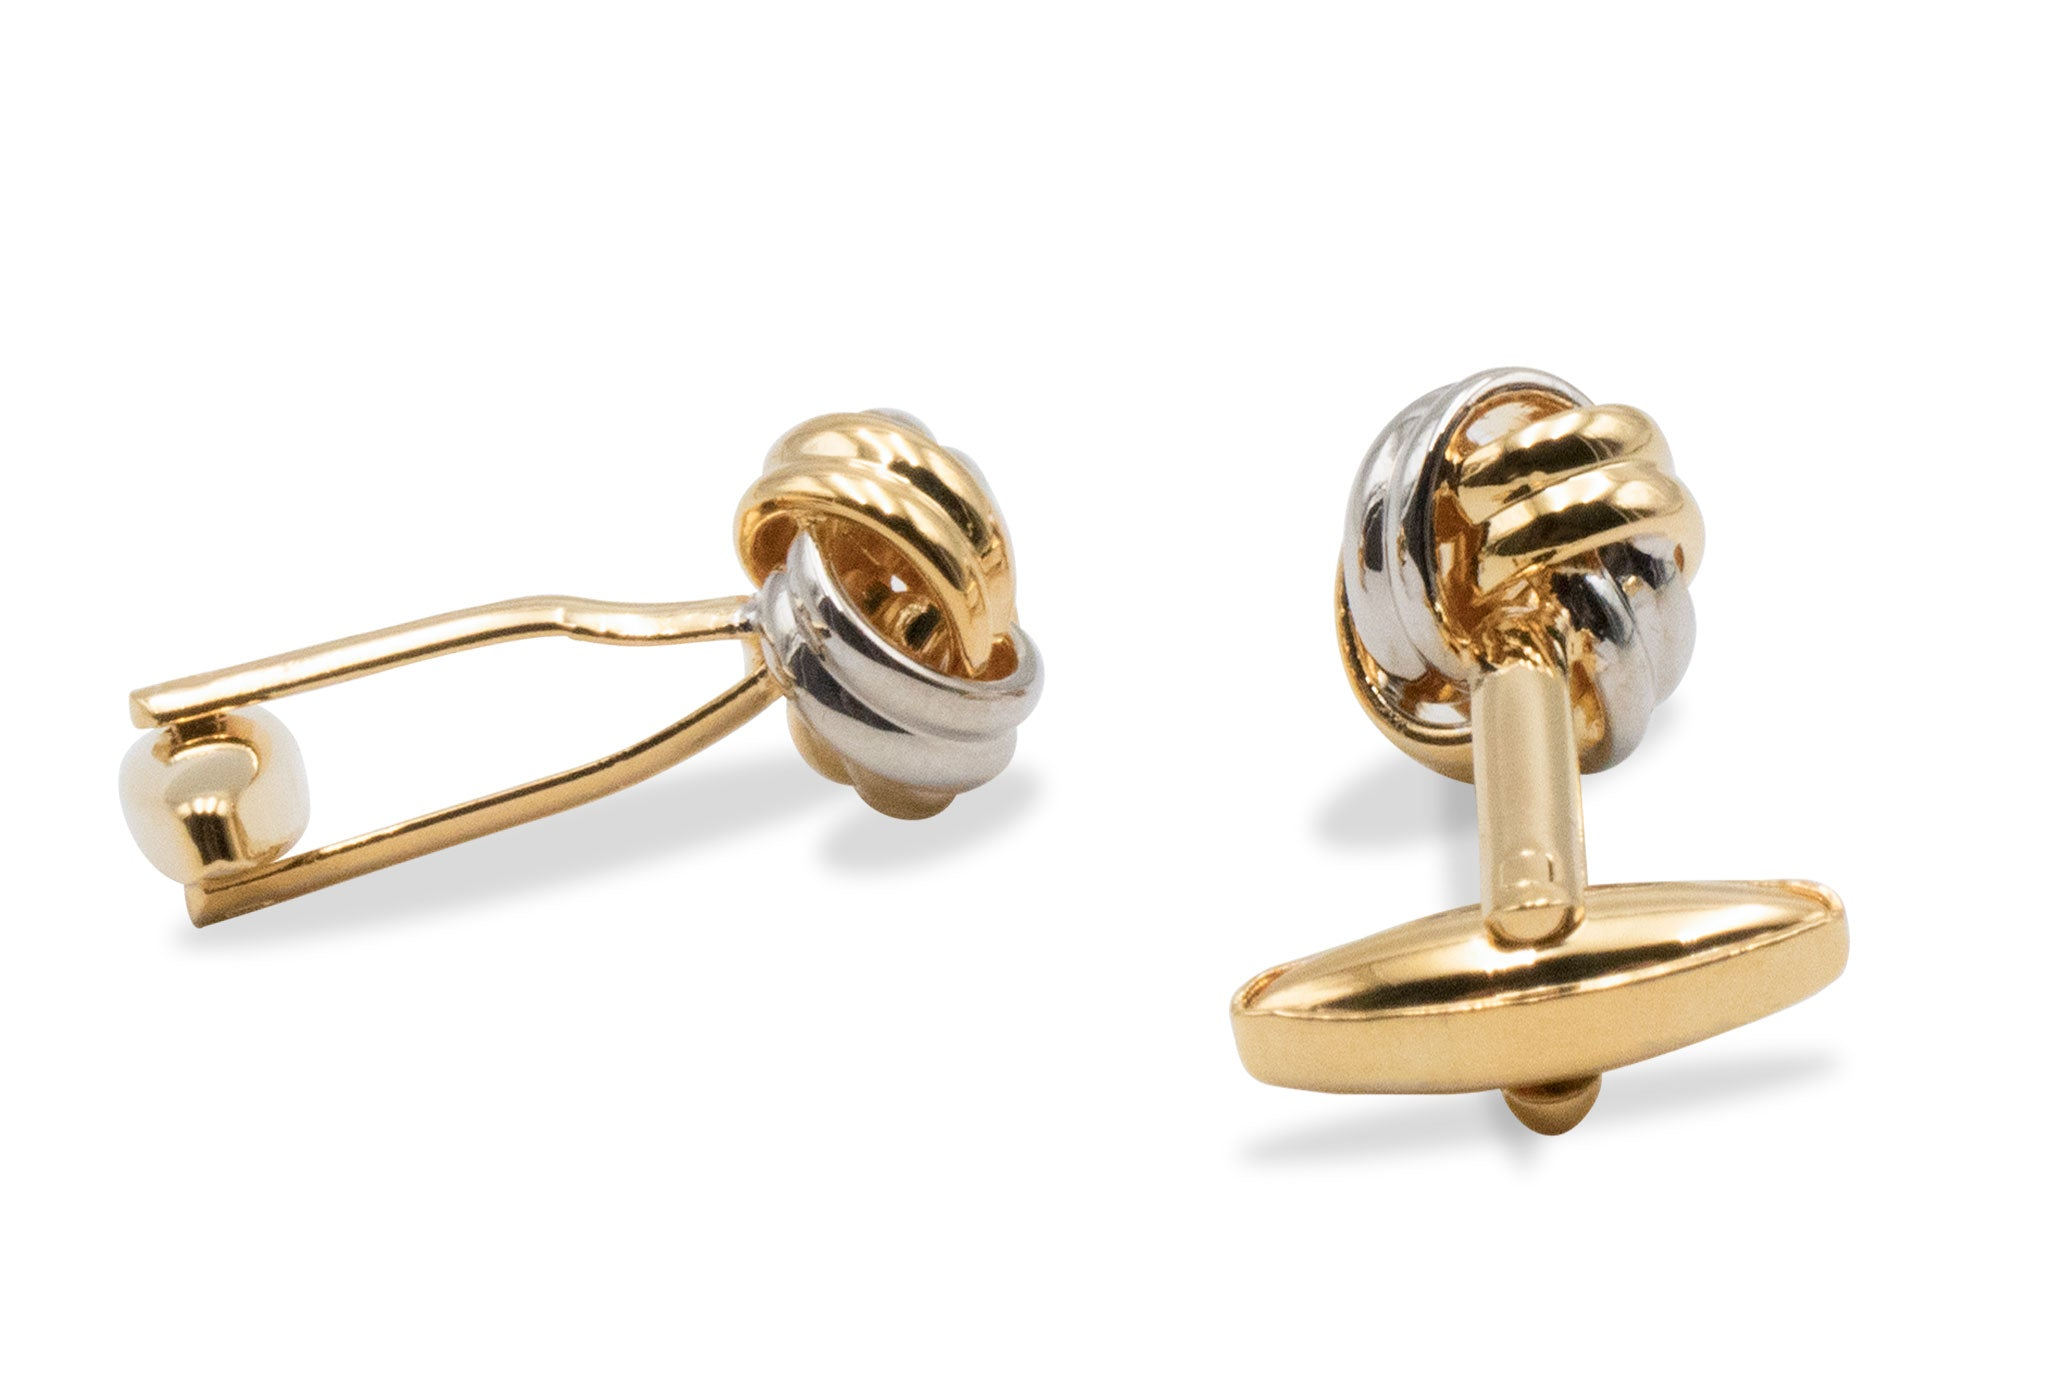 Ojeda II Chrome Knot Cufflinks